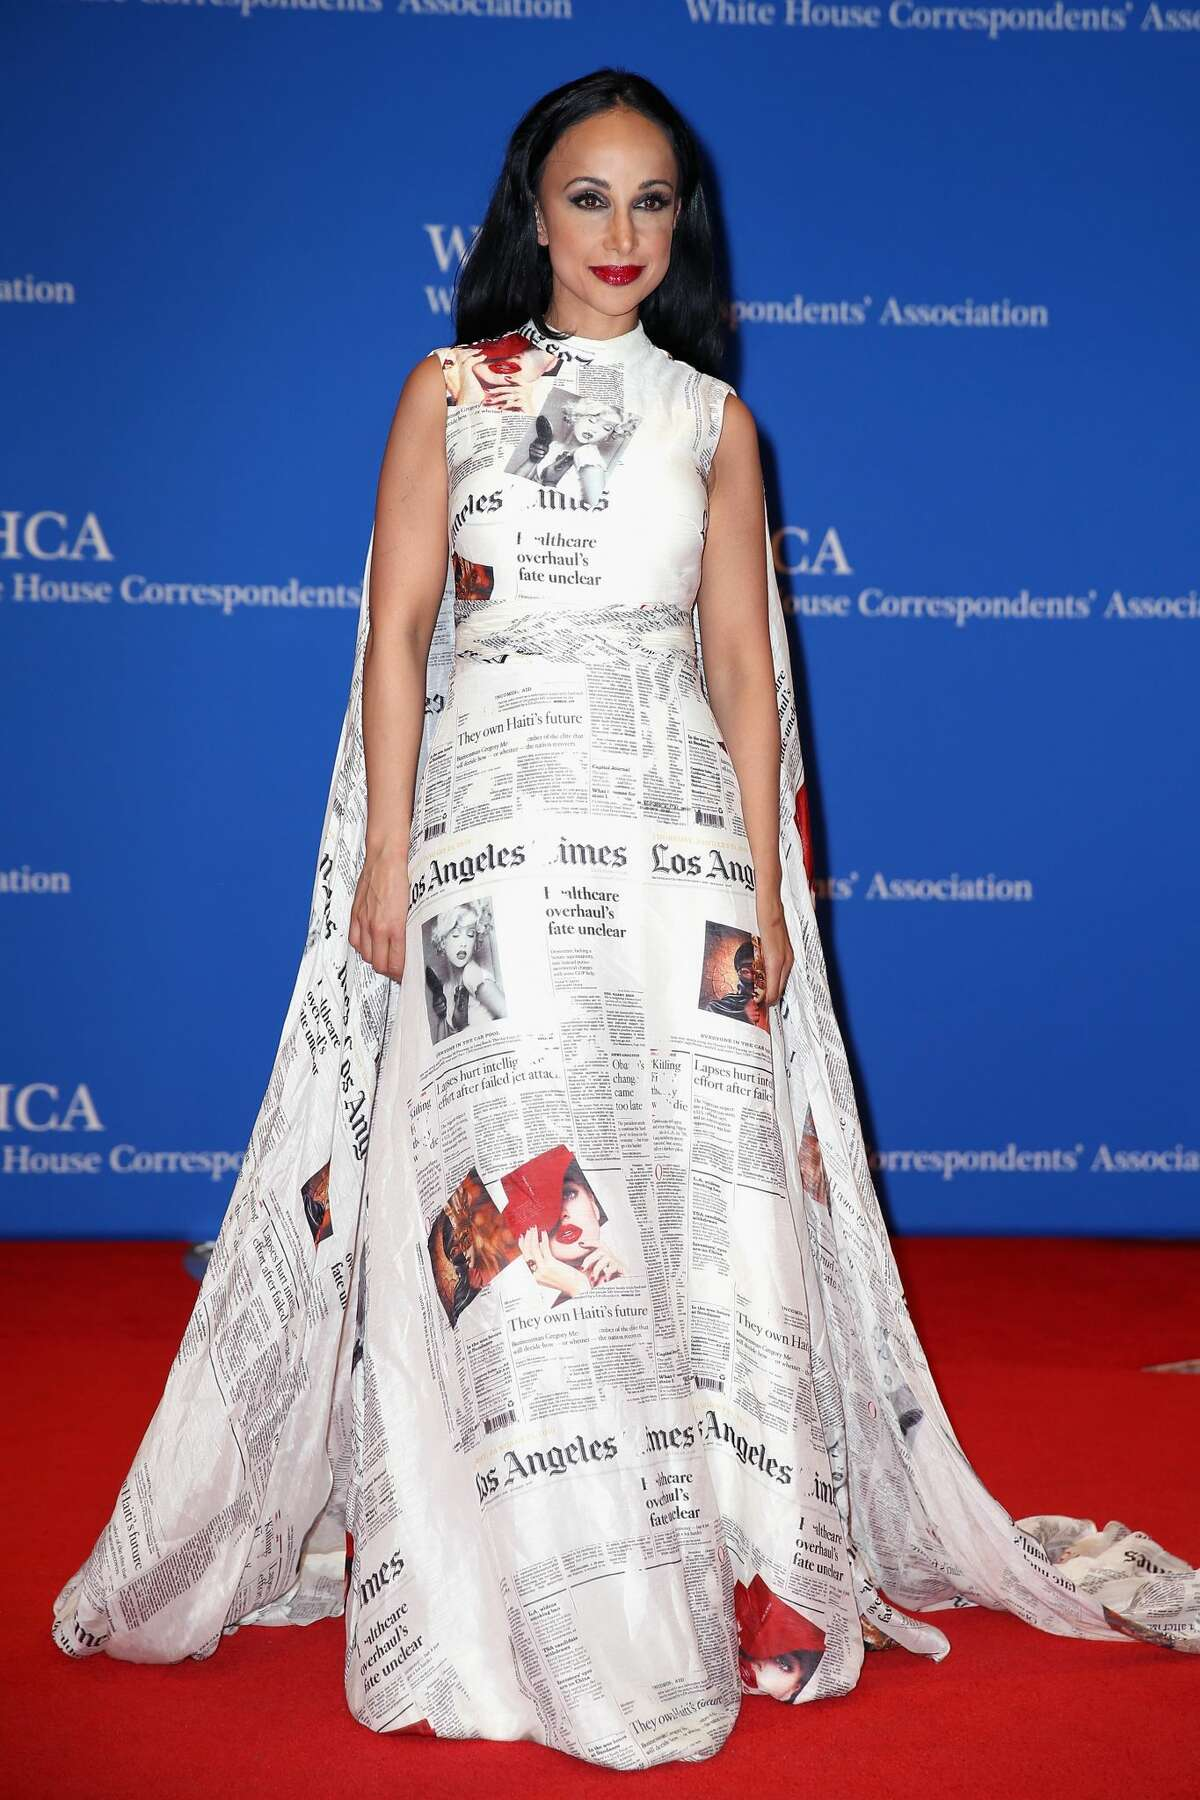 WASHINGTON, DC - APRIL 29: Doctor Nina Radcliff attends the 2017 White House Correspondents' Association Dinner at Washington Hilton on April 29, 2017 in Washington, DC. (Photo by Tasos Katopodis/Getty Images)